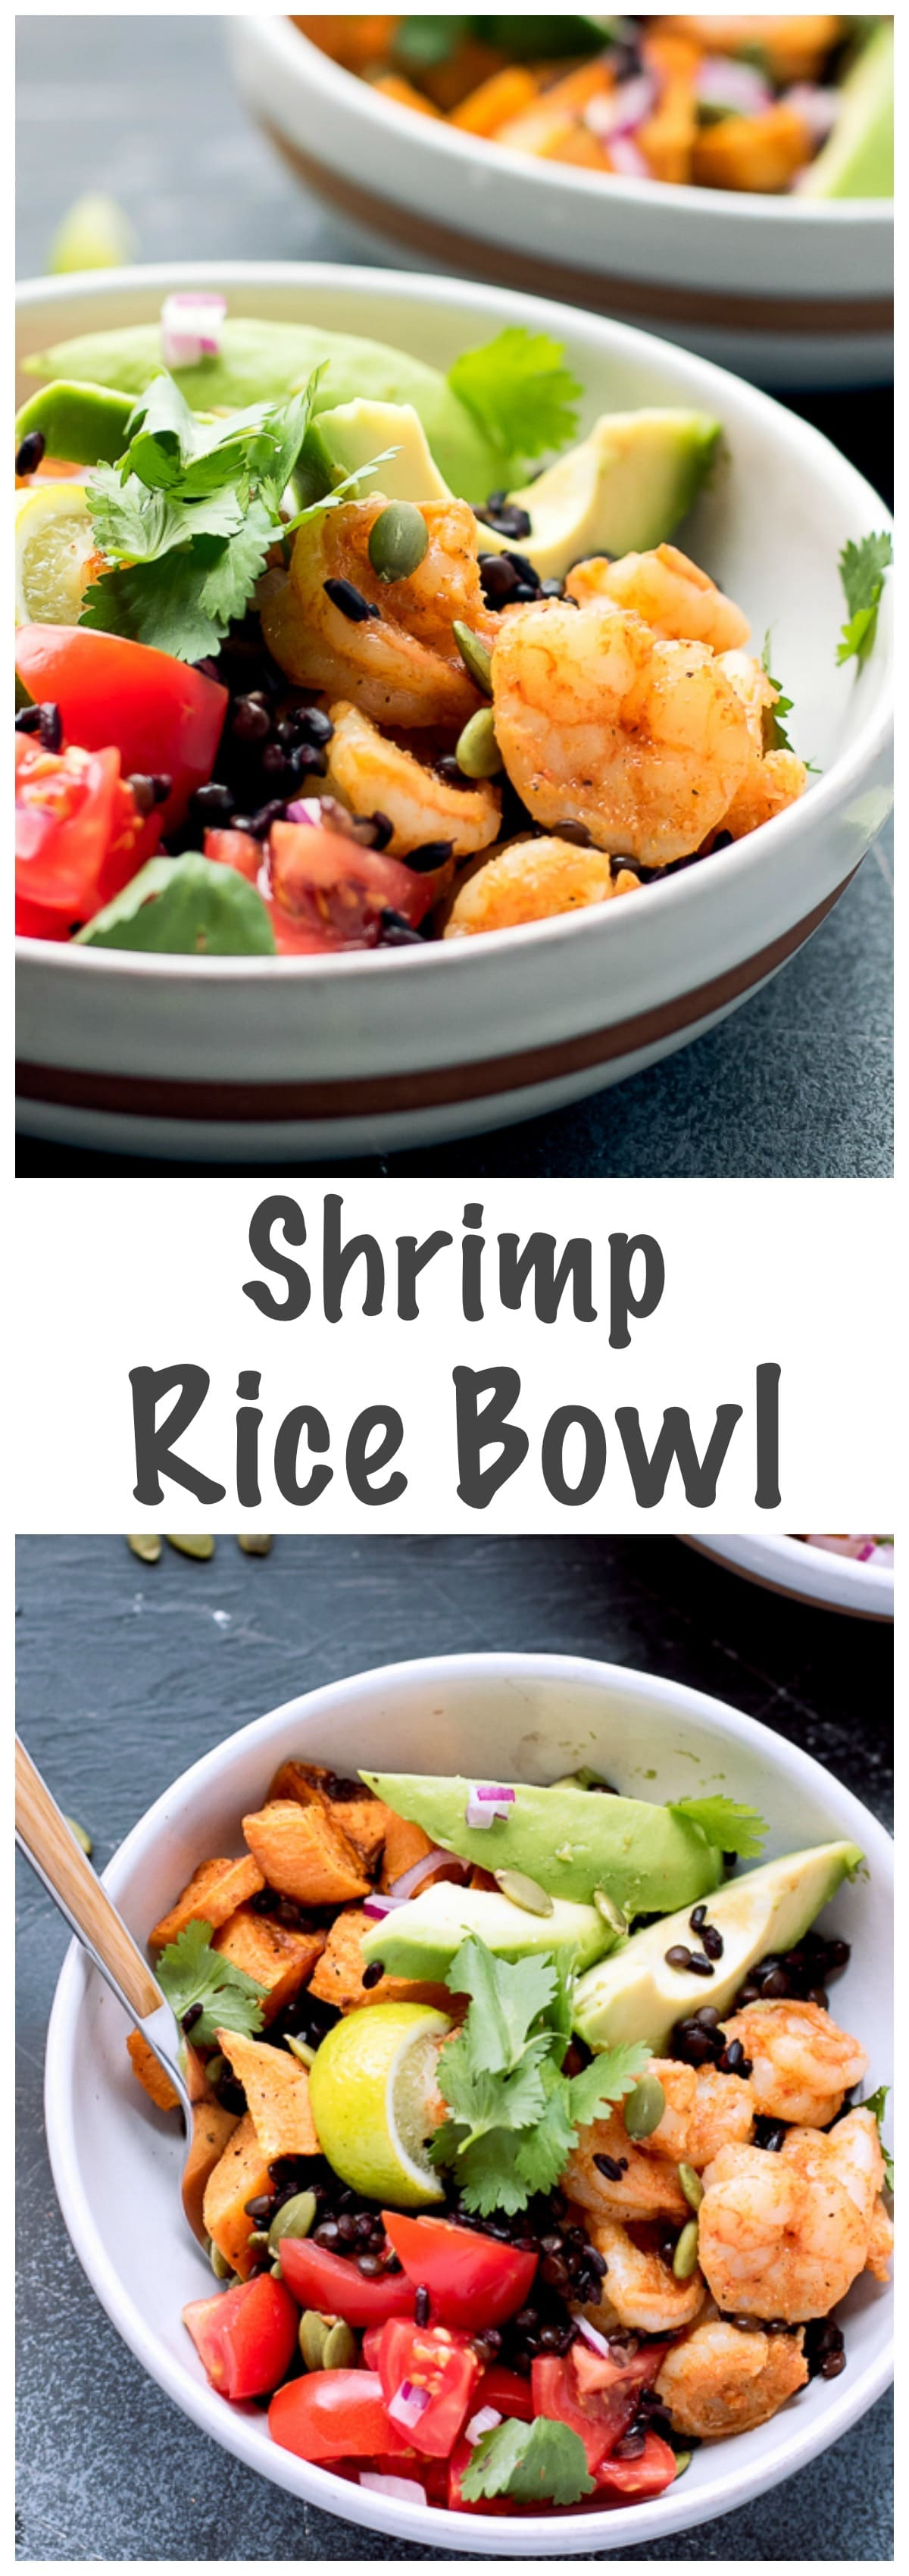 Shrimp Rice Bowl Recipe - a gluten free, nutritious and delicious bowl, perfect for a quick and healthy meal. Made with Village Harvest Antioxidant Blend.